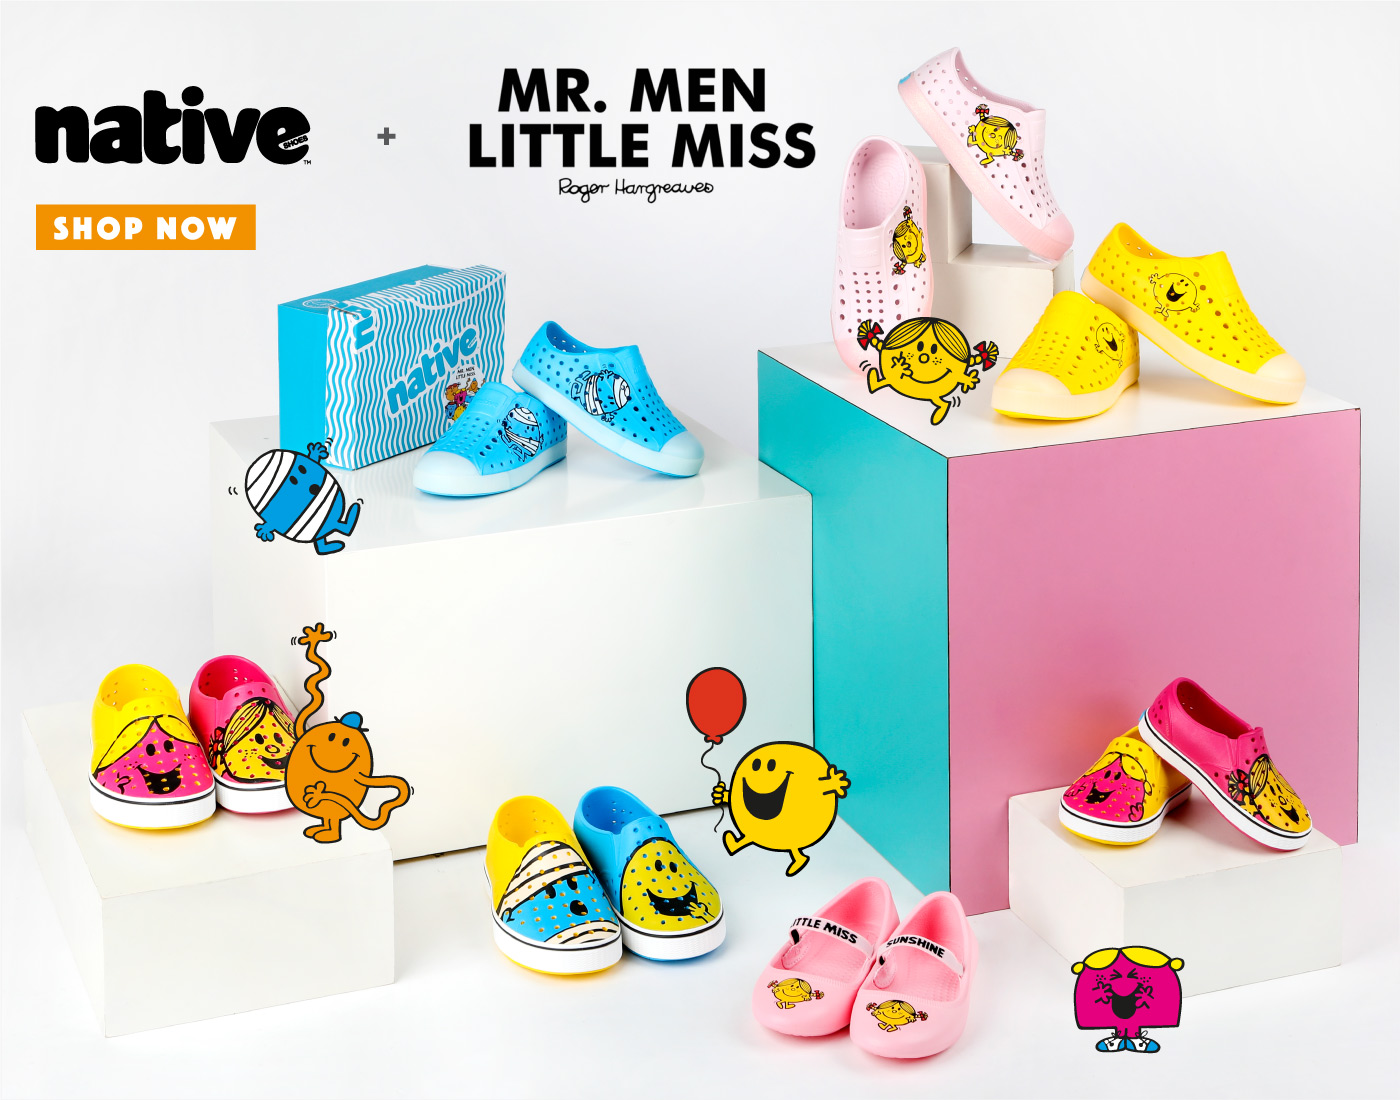 Native Shoes x Mr. Men Little Miss collab is here!